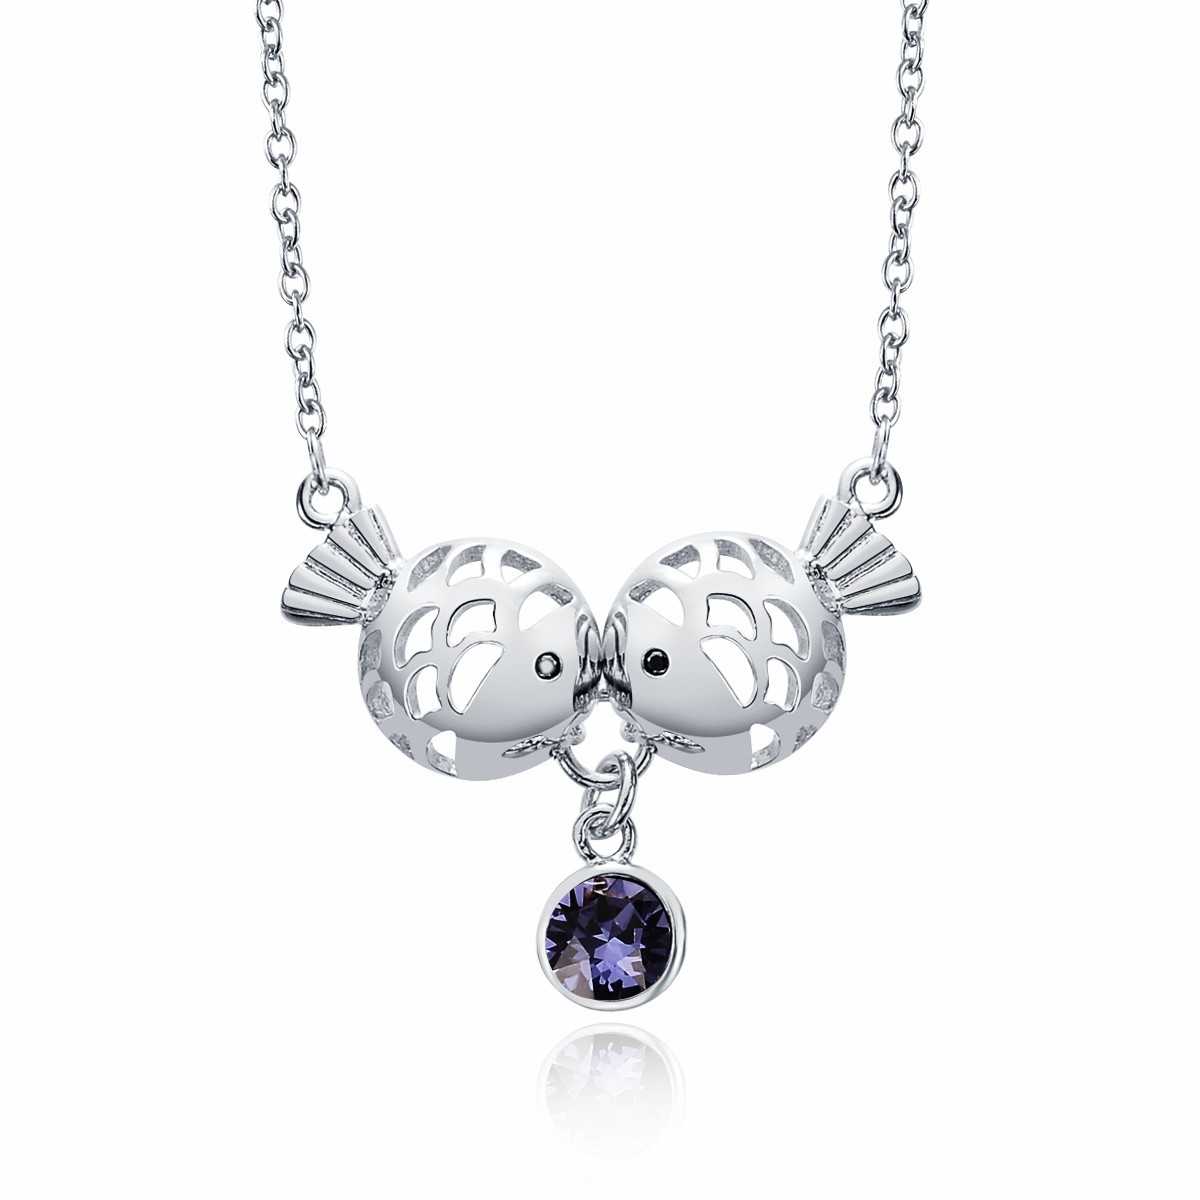 Women sterling silver hollow kissing fish drop purple round women sterling silver hollow kissing fish drop purple round crystal pendant necklace jewelry mozeypictures Gallery